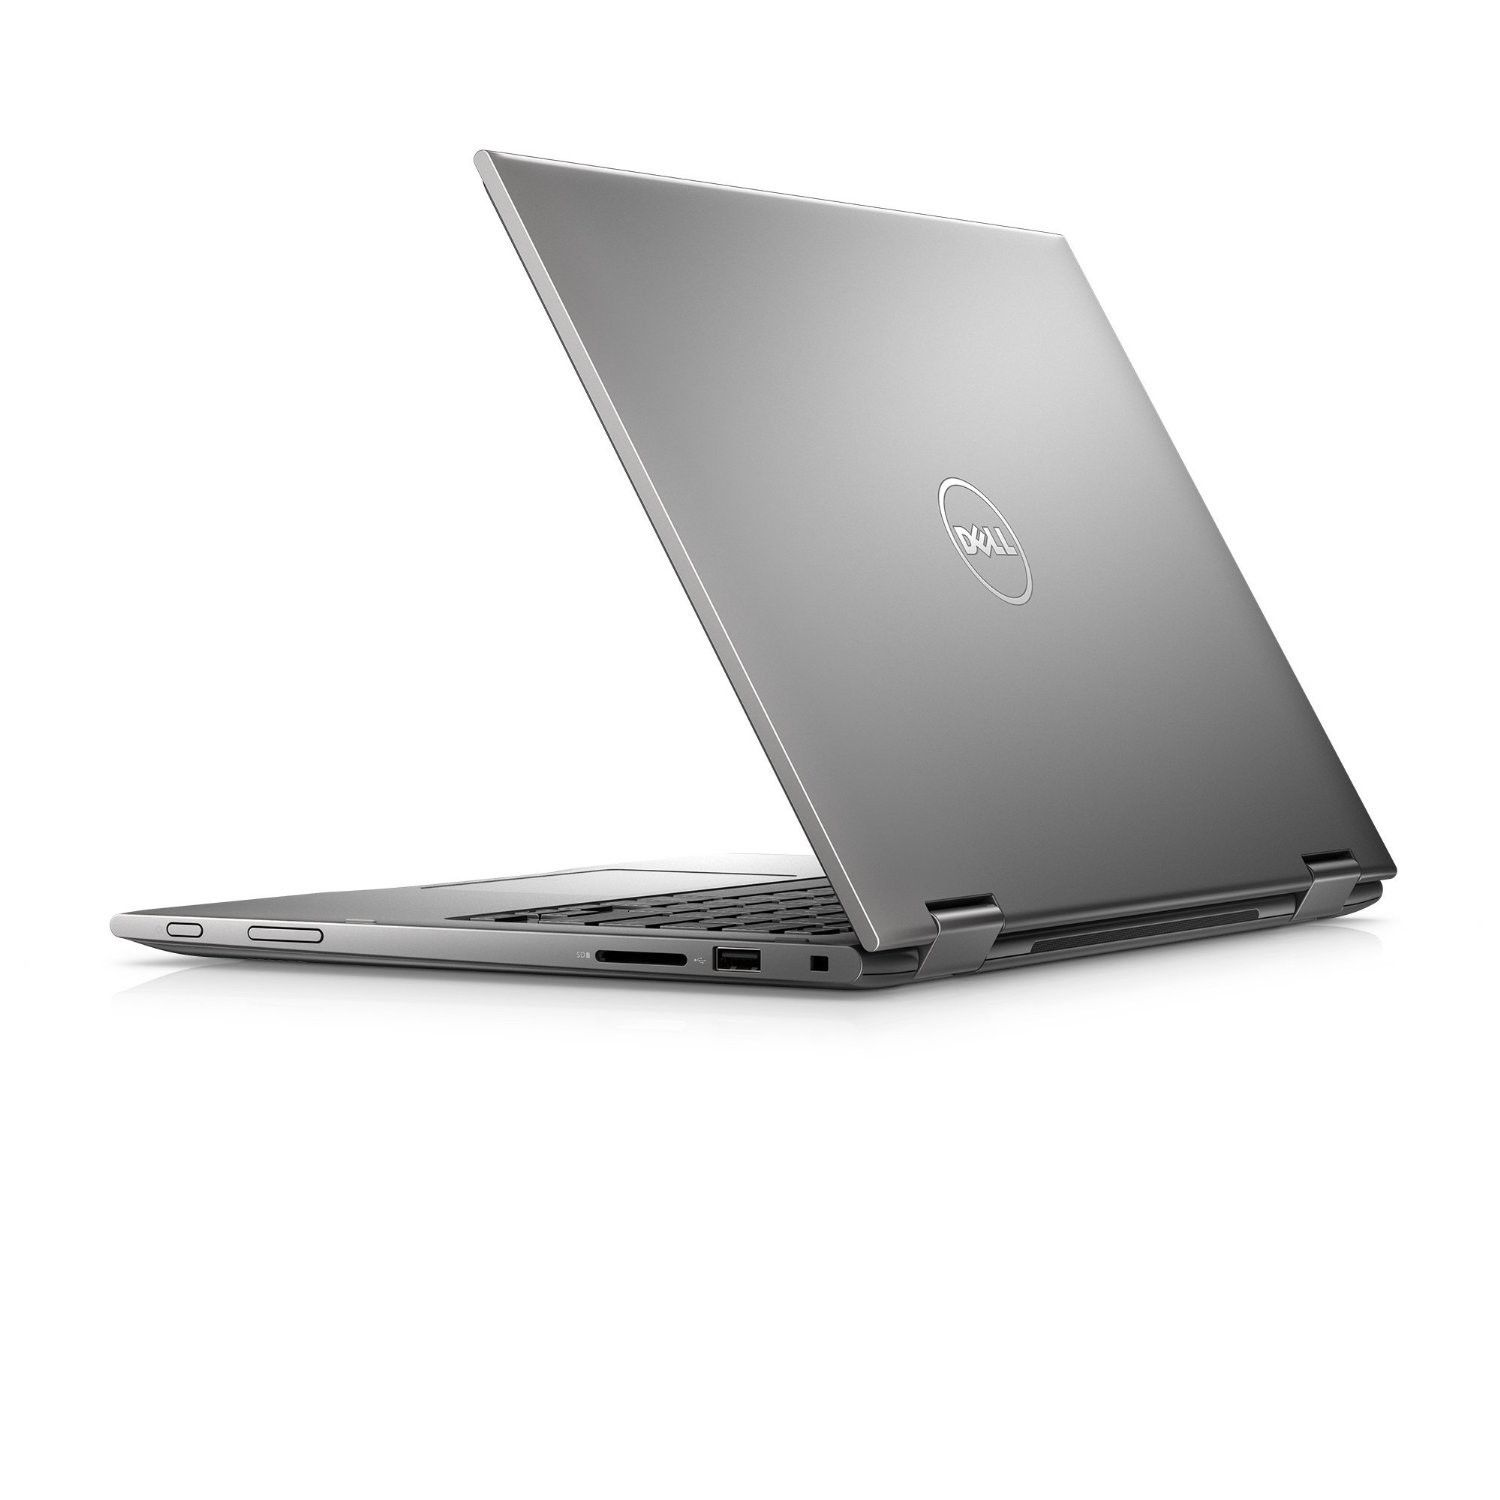 "Dell Inspiron 13 5378 2-in-1 13.3"" I5-7200U 8GB 500Gb FHD Touchscreen Windows 10"